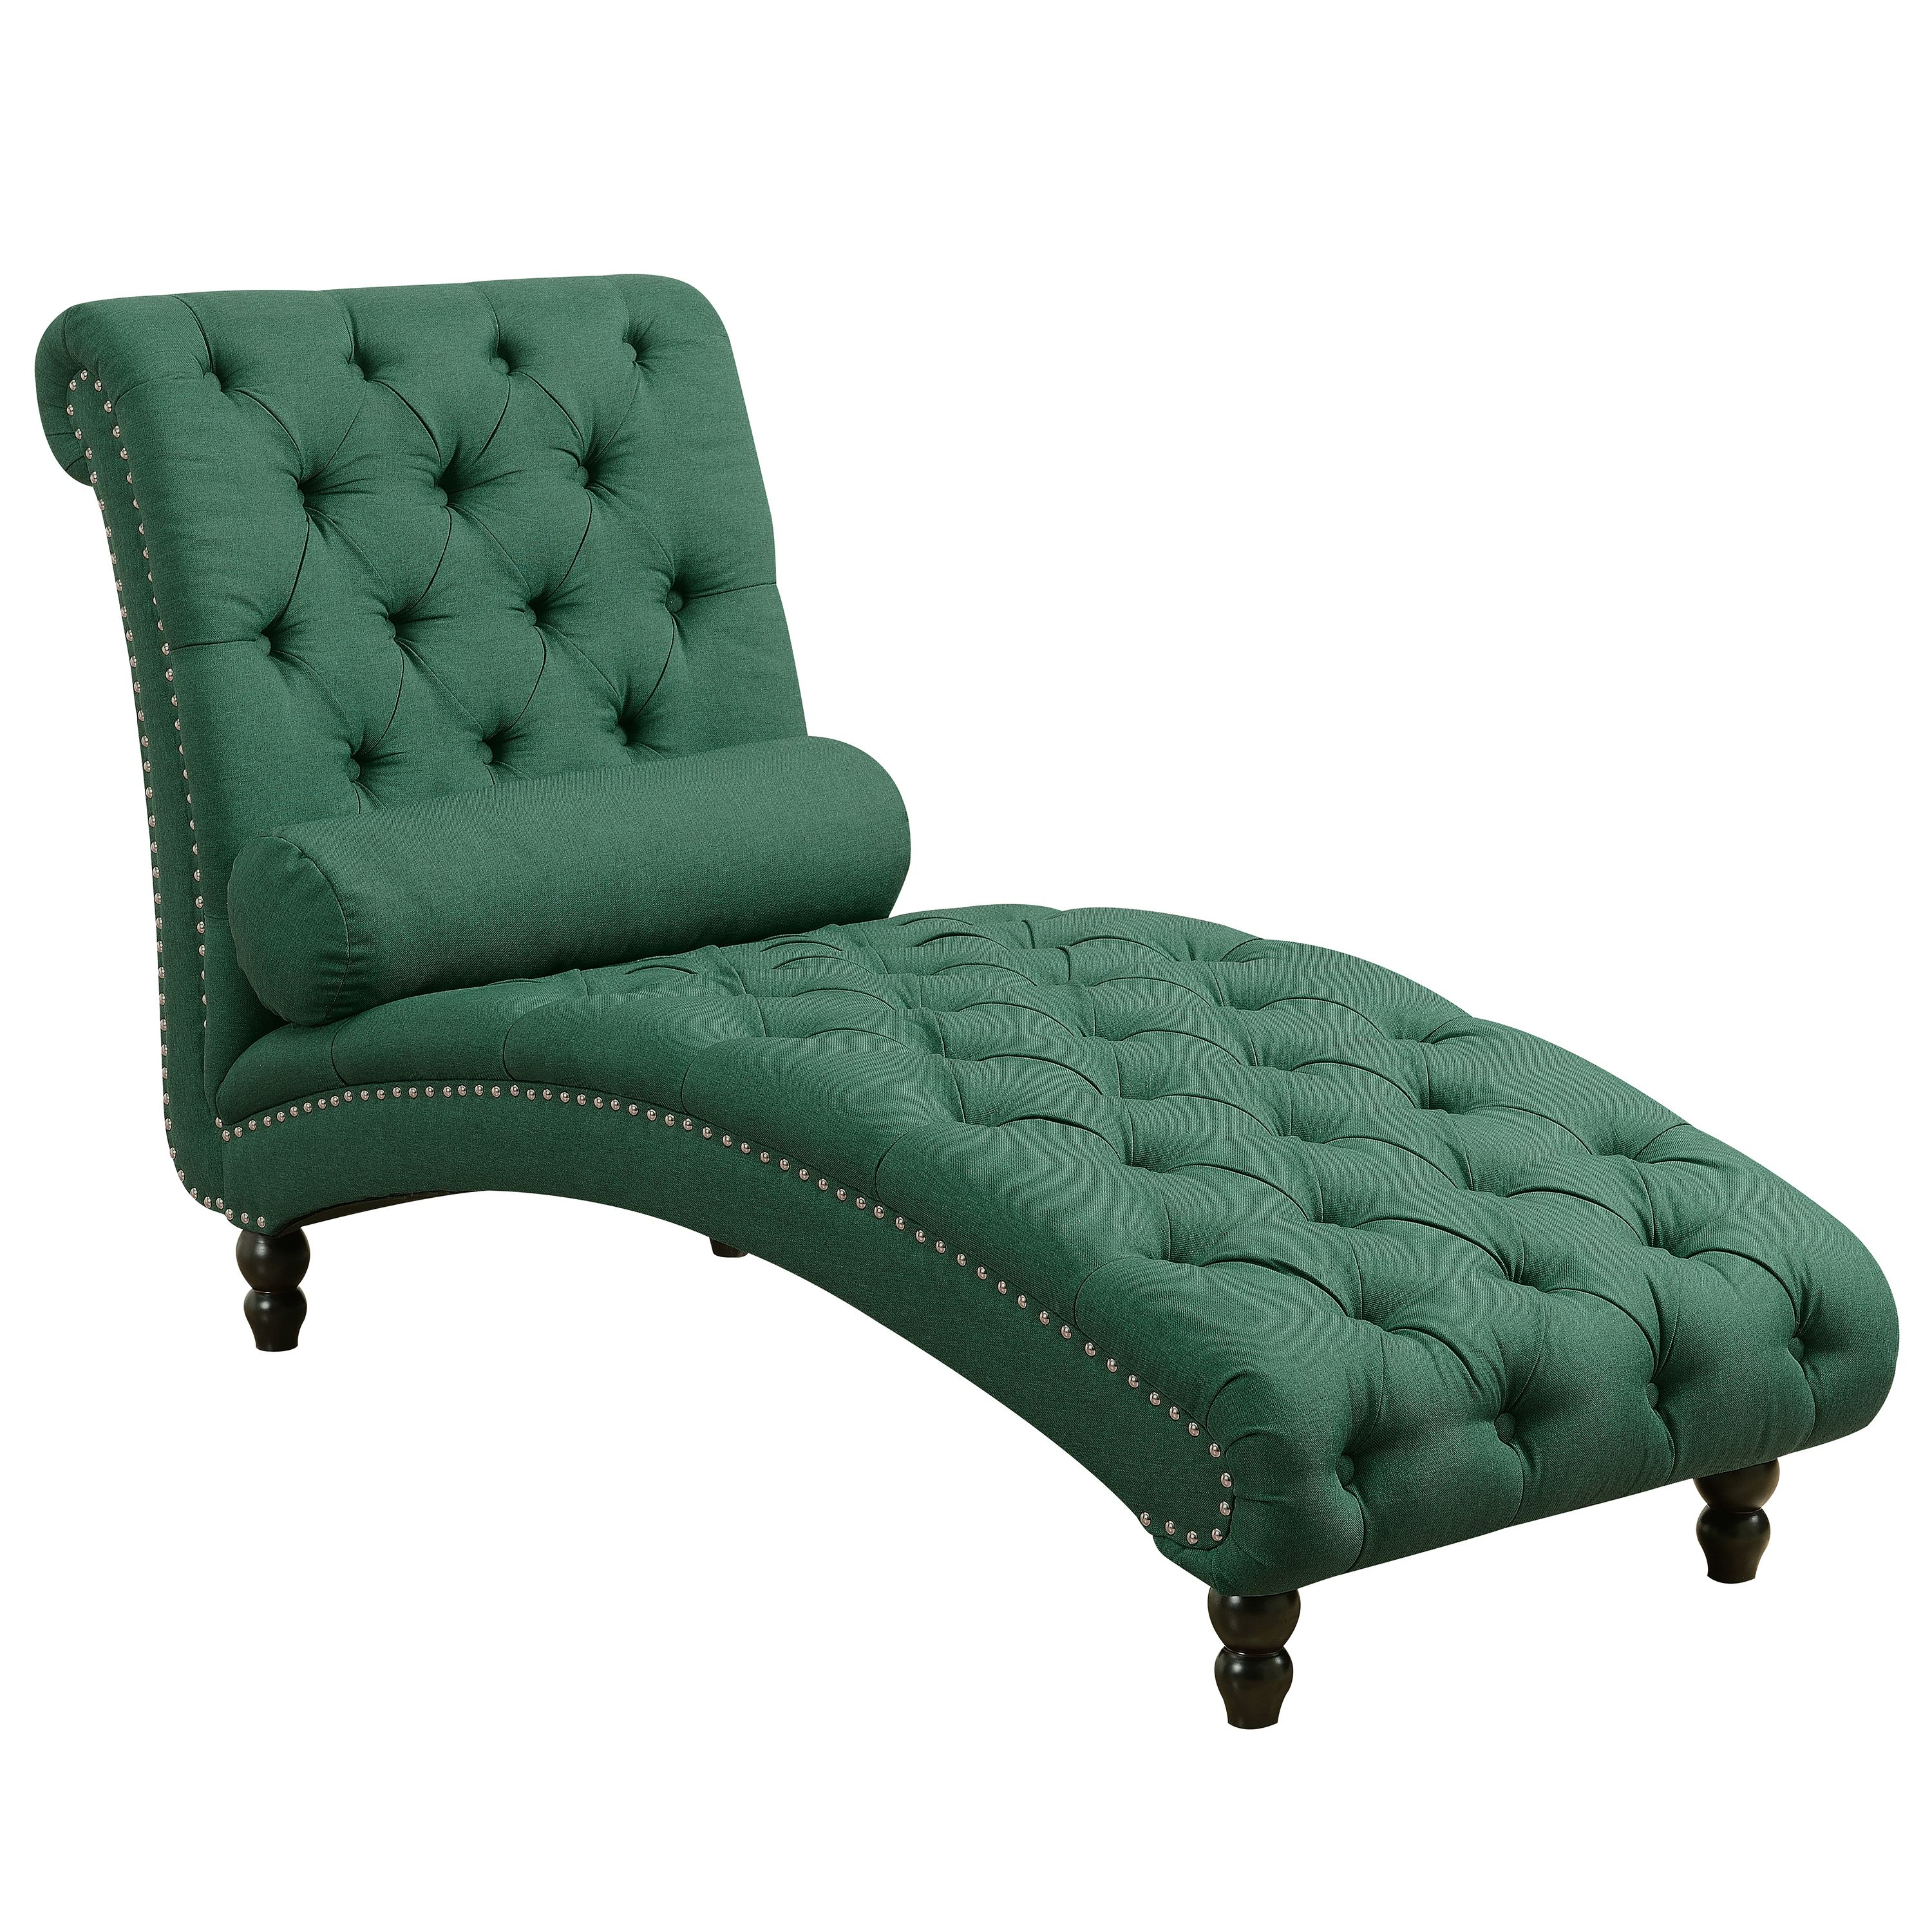 Alice Polyester Button Tufted Chesterfield Armless Chaise Lounge with Silver Accent Nailheads